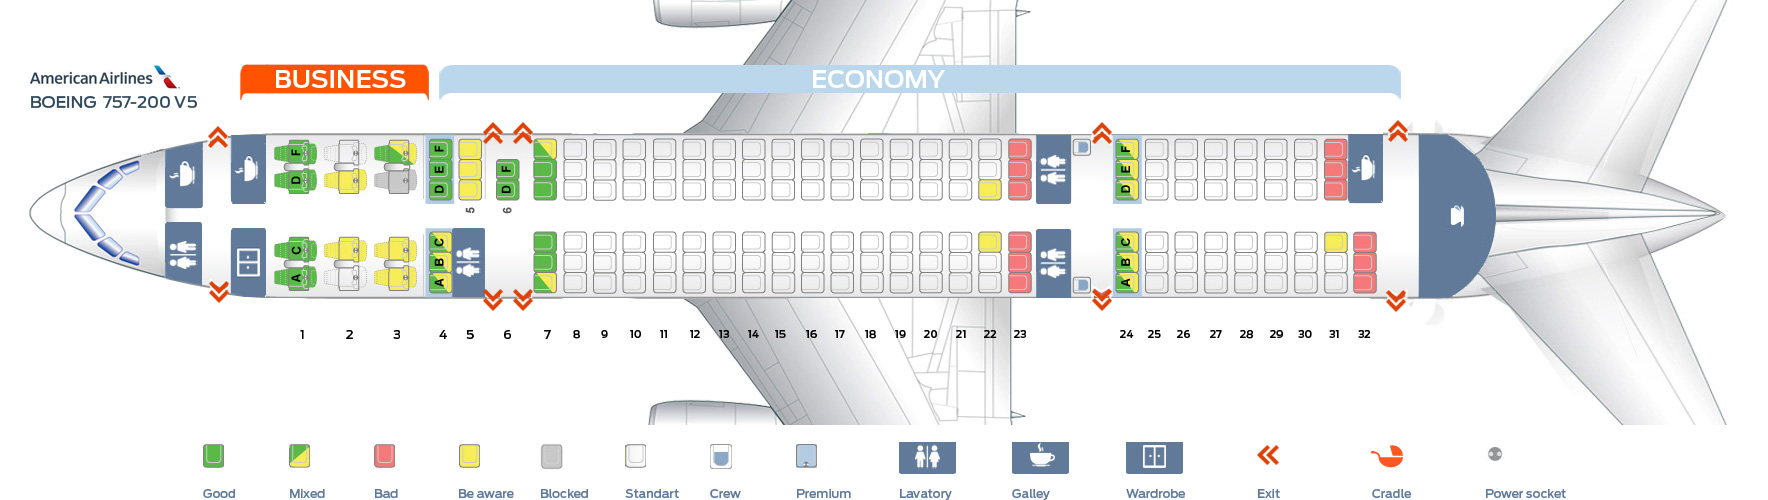 Seat_map_American_Airlines_Boeing_757-200_v5